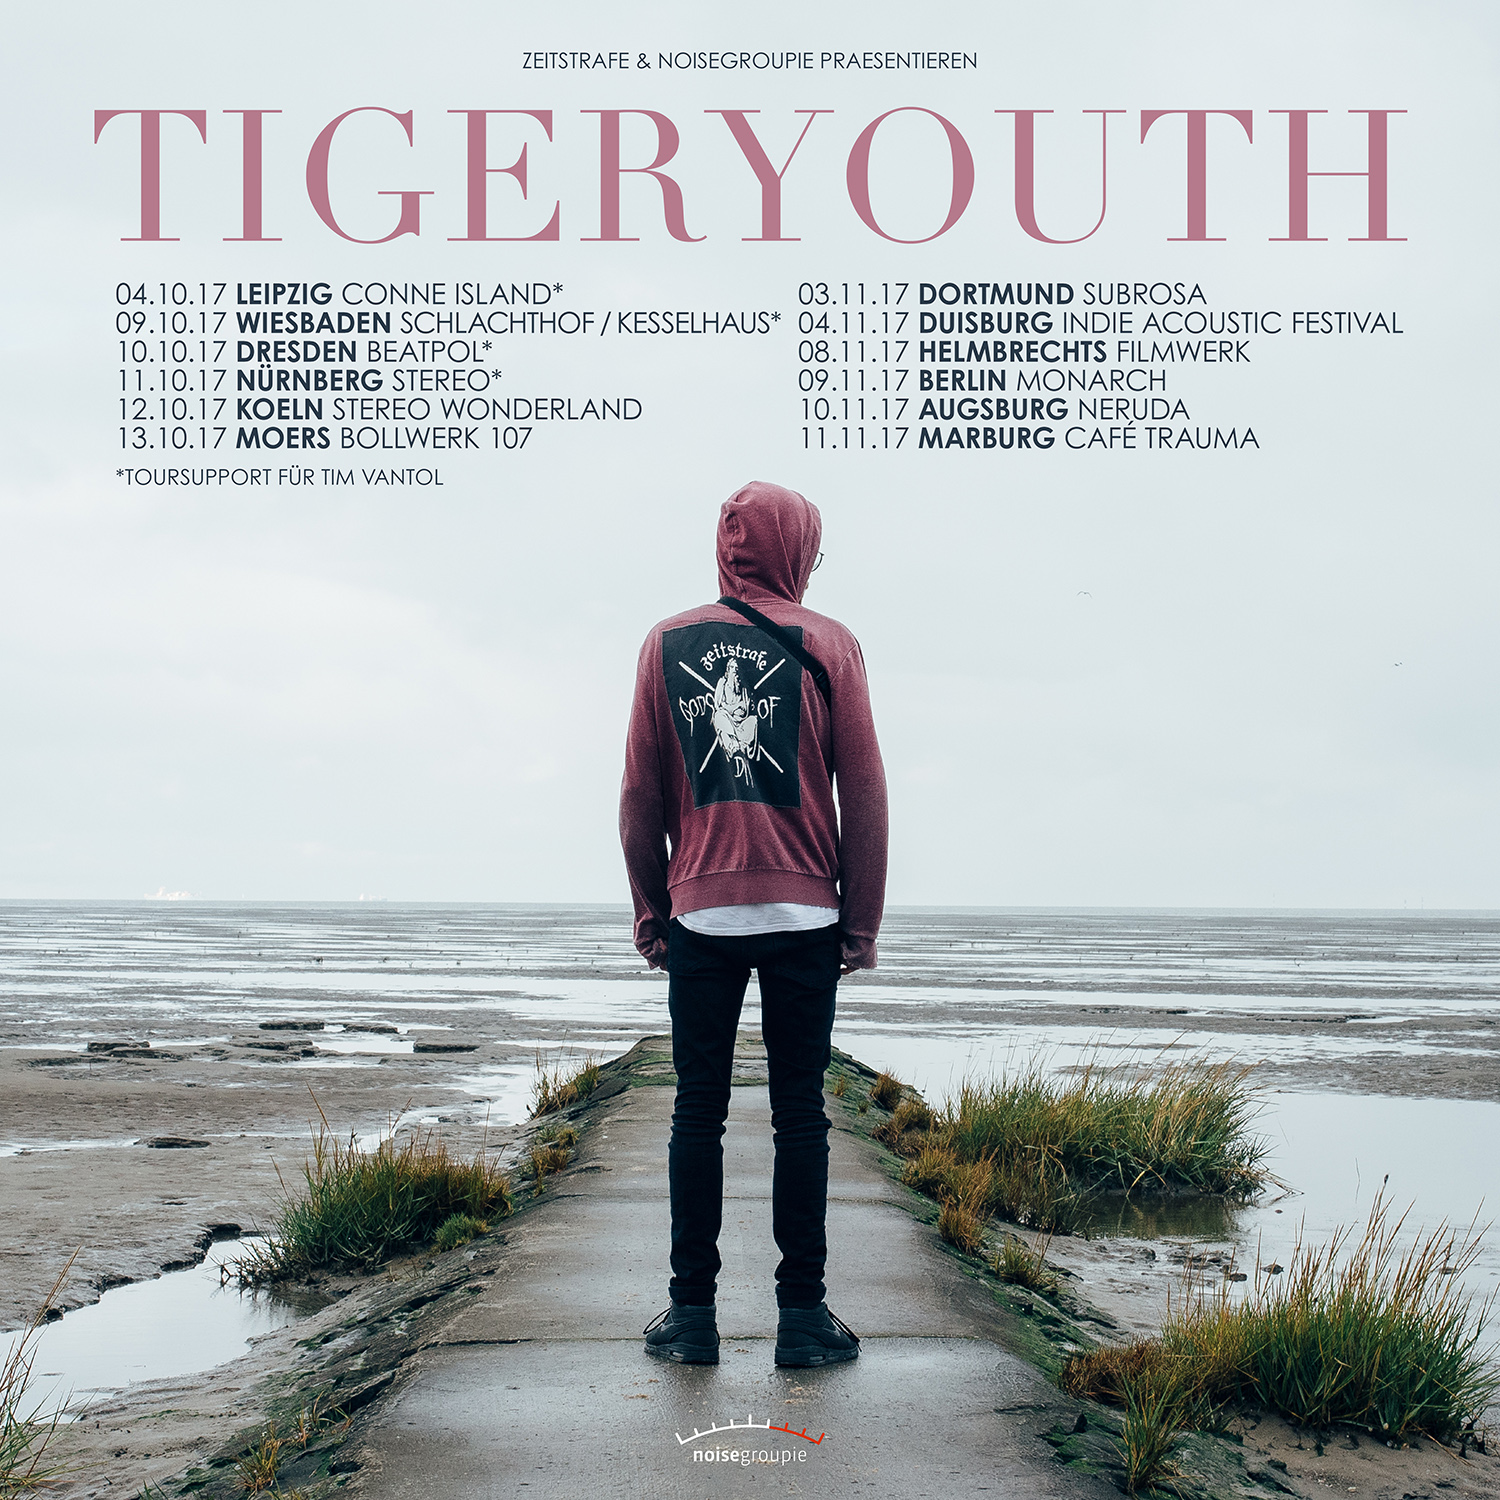 Tigeryouth Tour